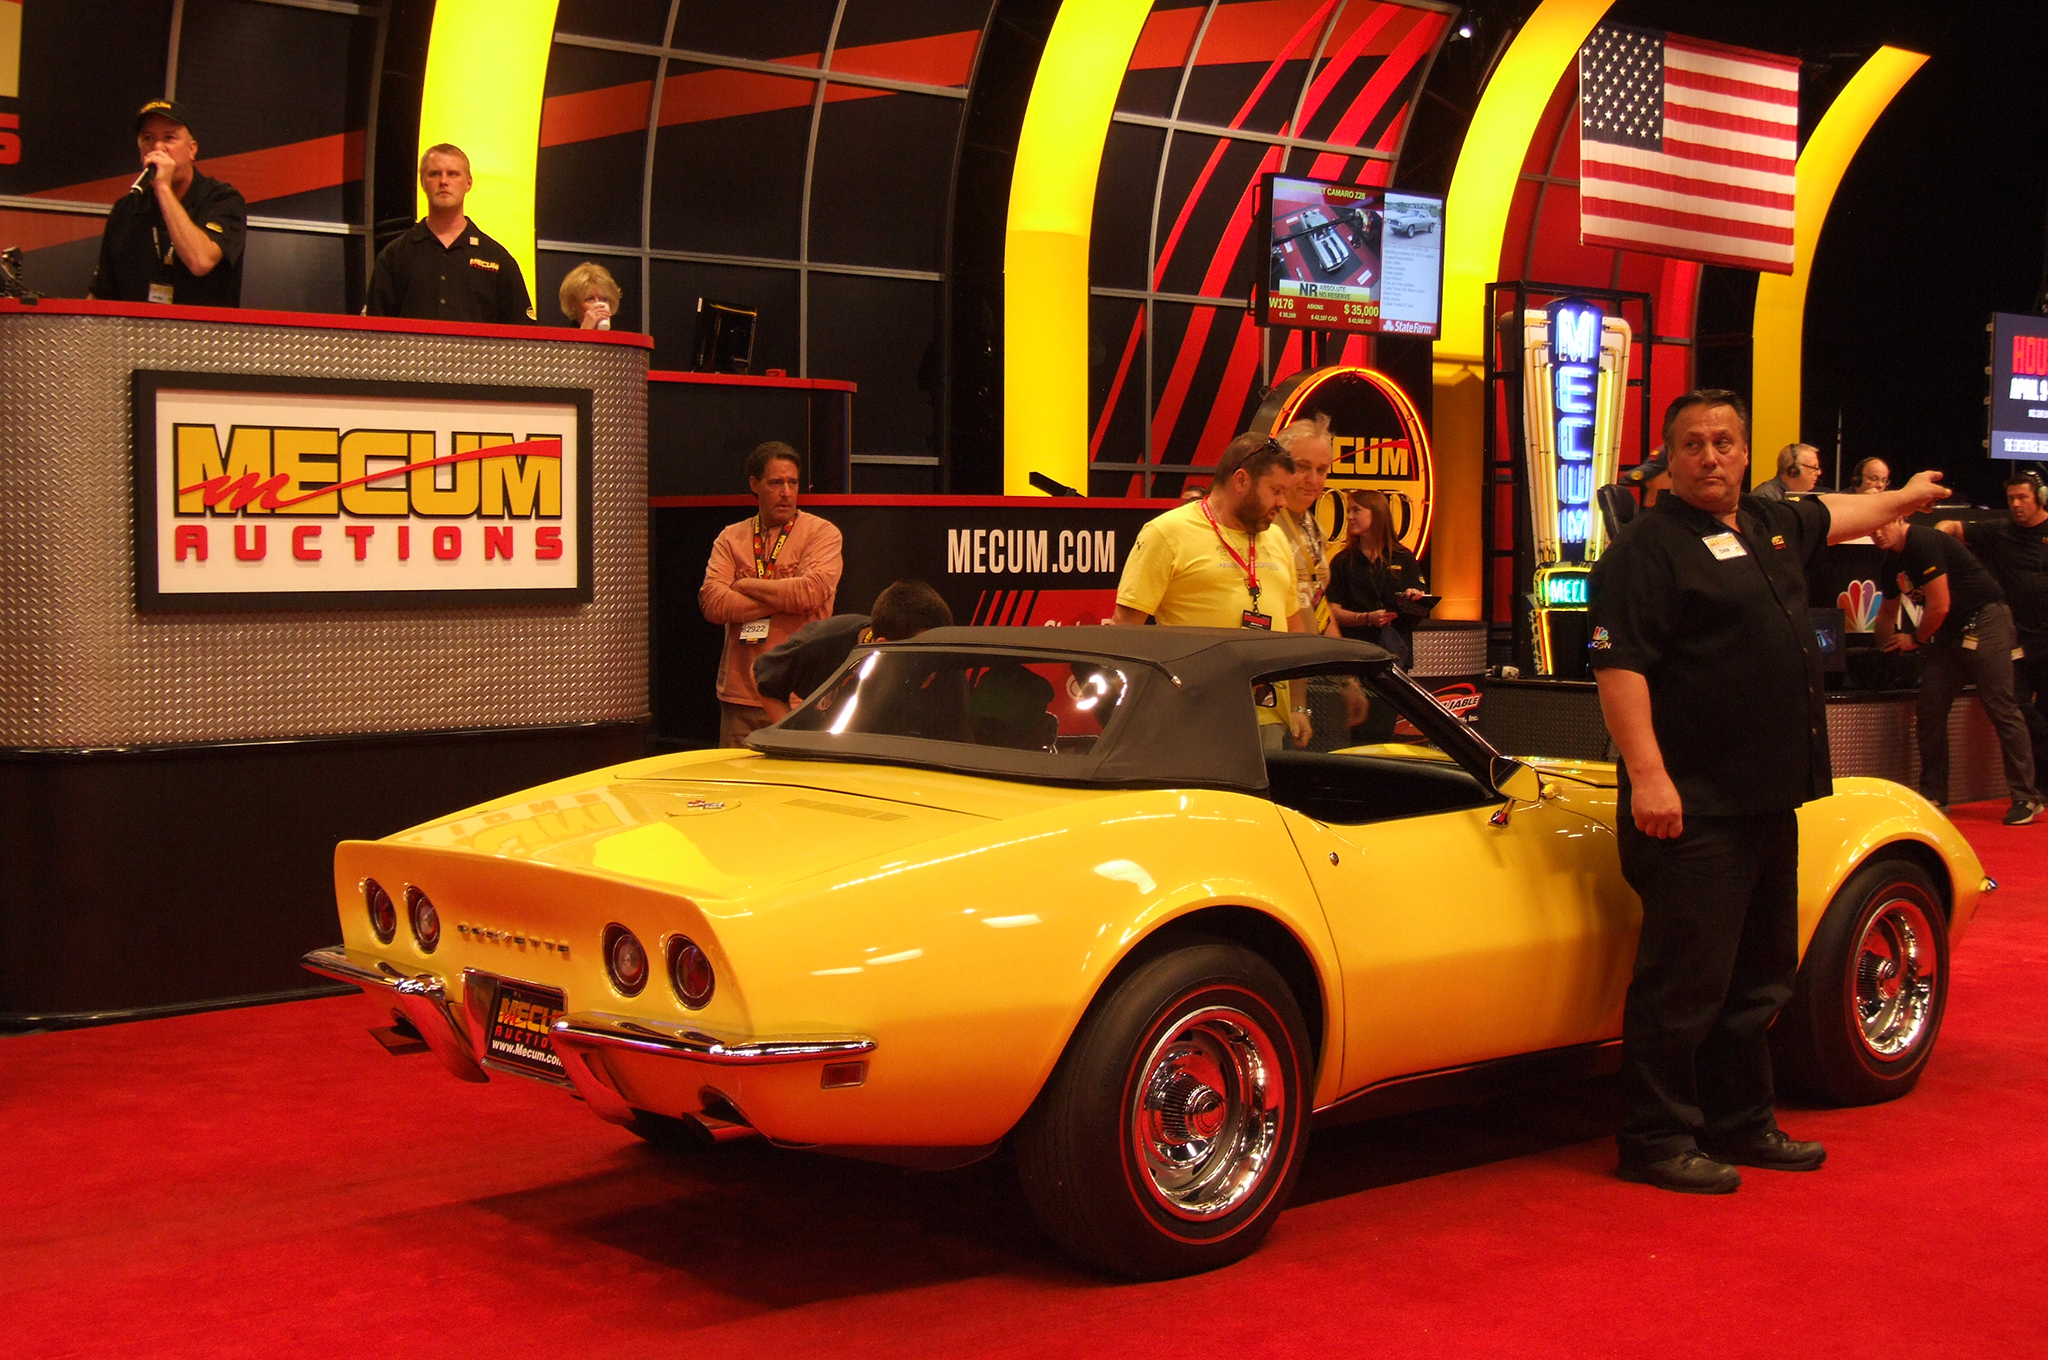 A team of Mecum bidders' assistants constantly scan the audience looking for the next bidder, while others talk to remote bidders via phone.